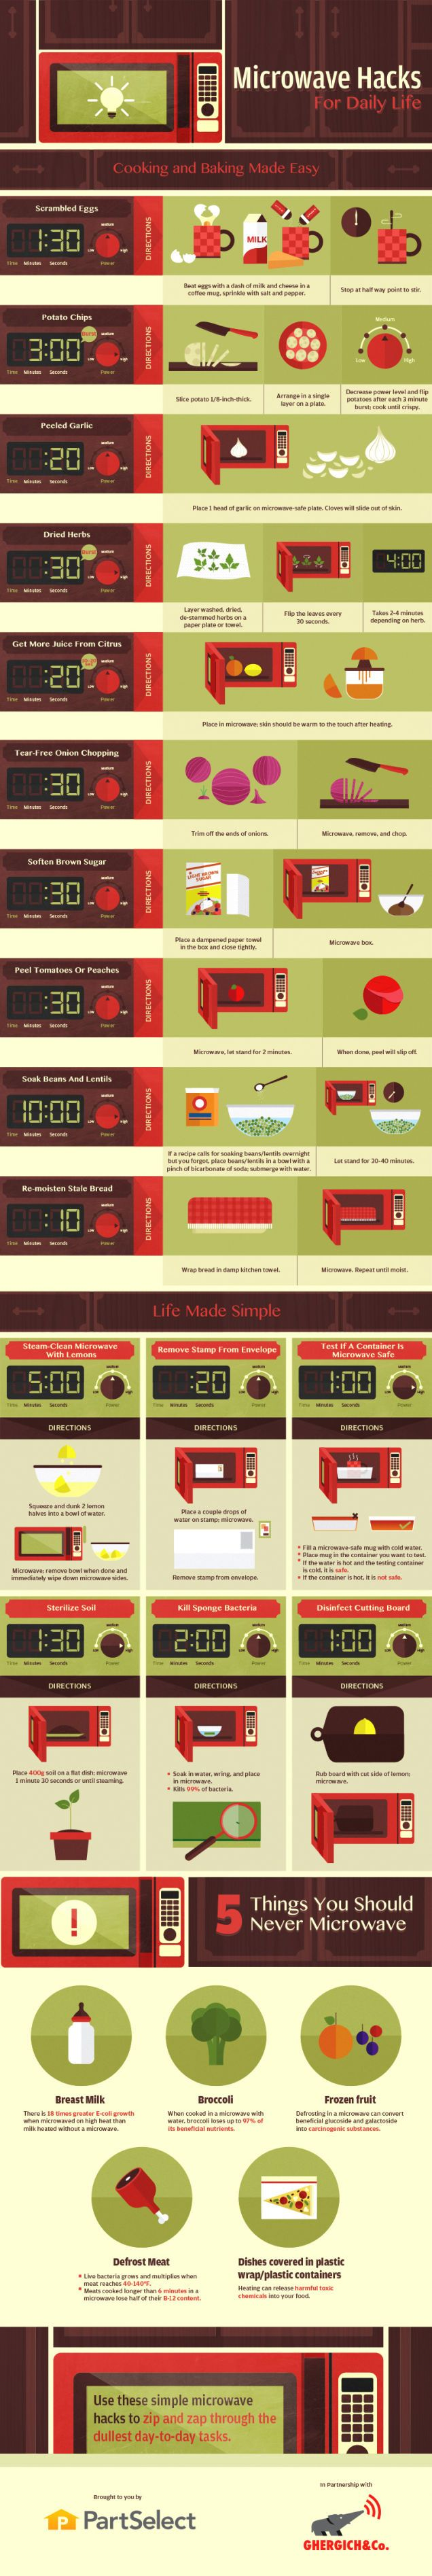 This Infographic is a Cheat Sheet For Clever Microwave Uses.  I've died and gone to Microwave Heaven.  :c)